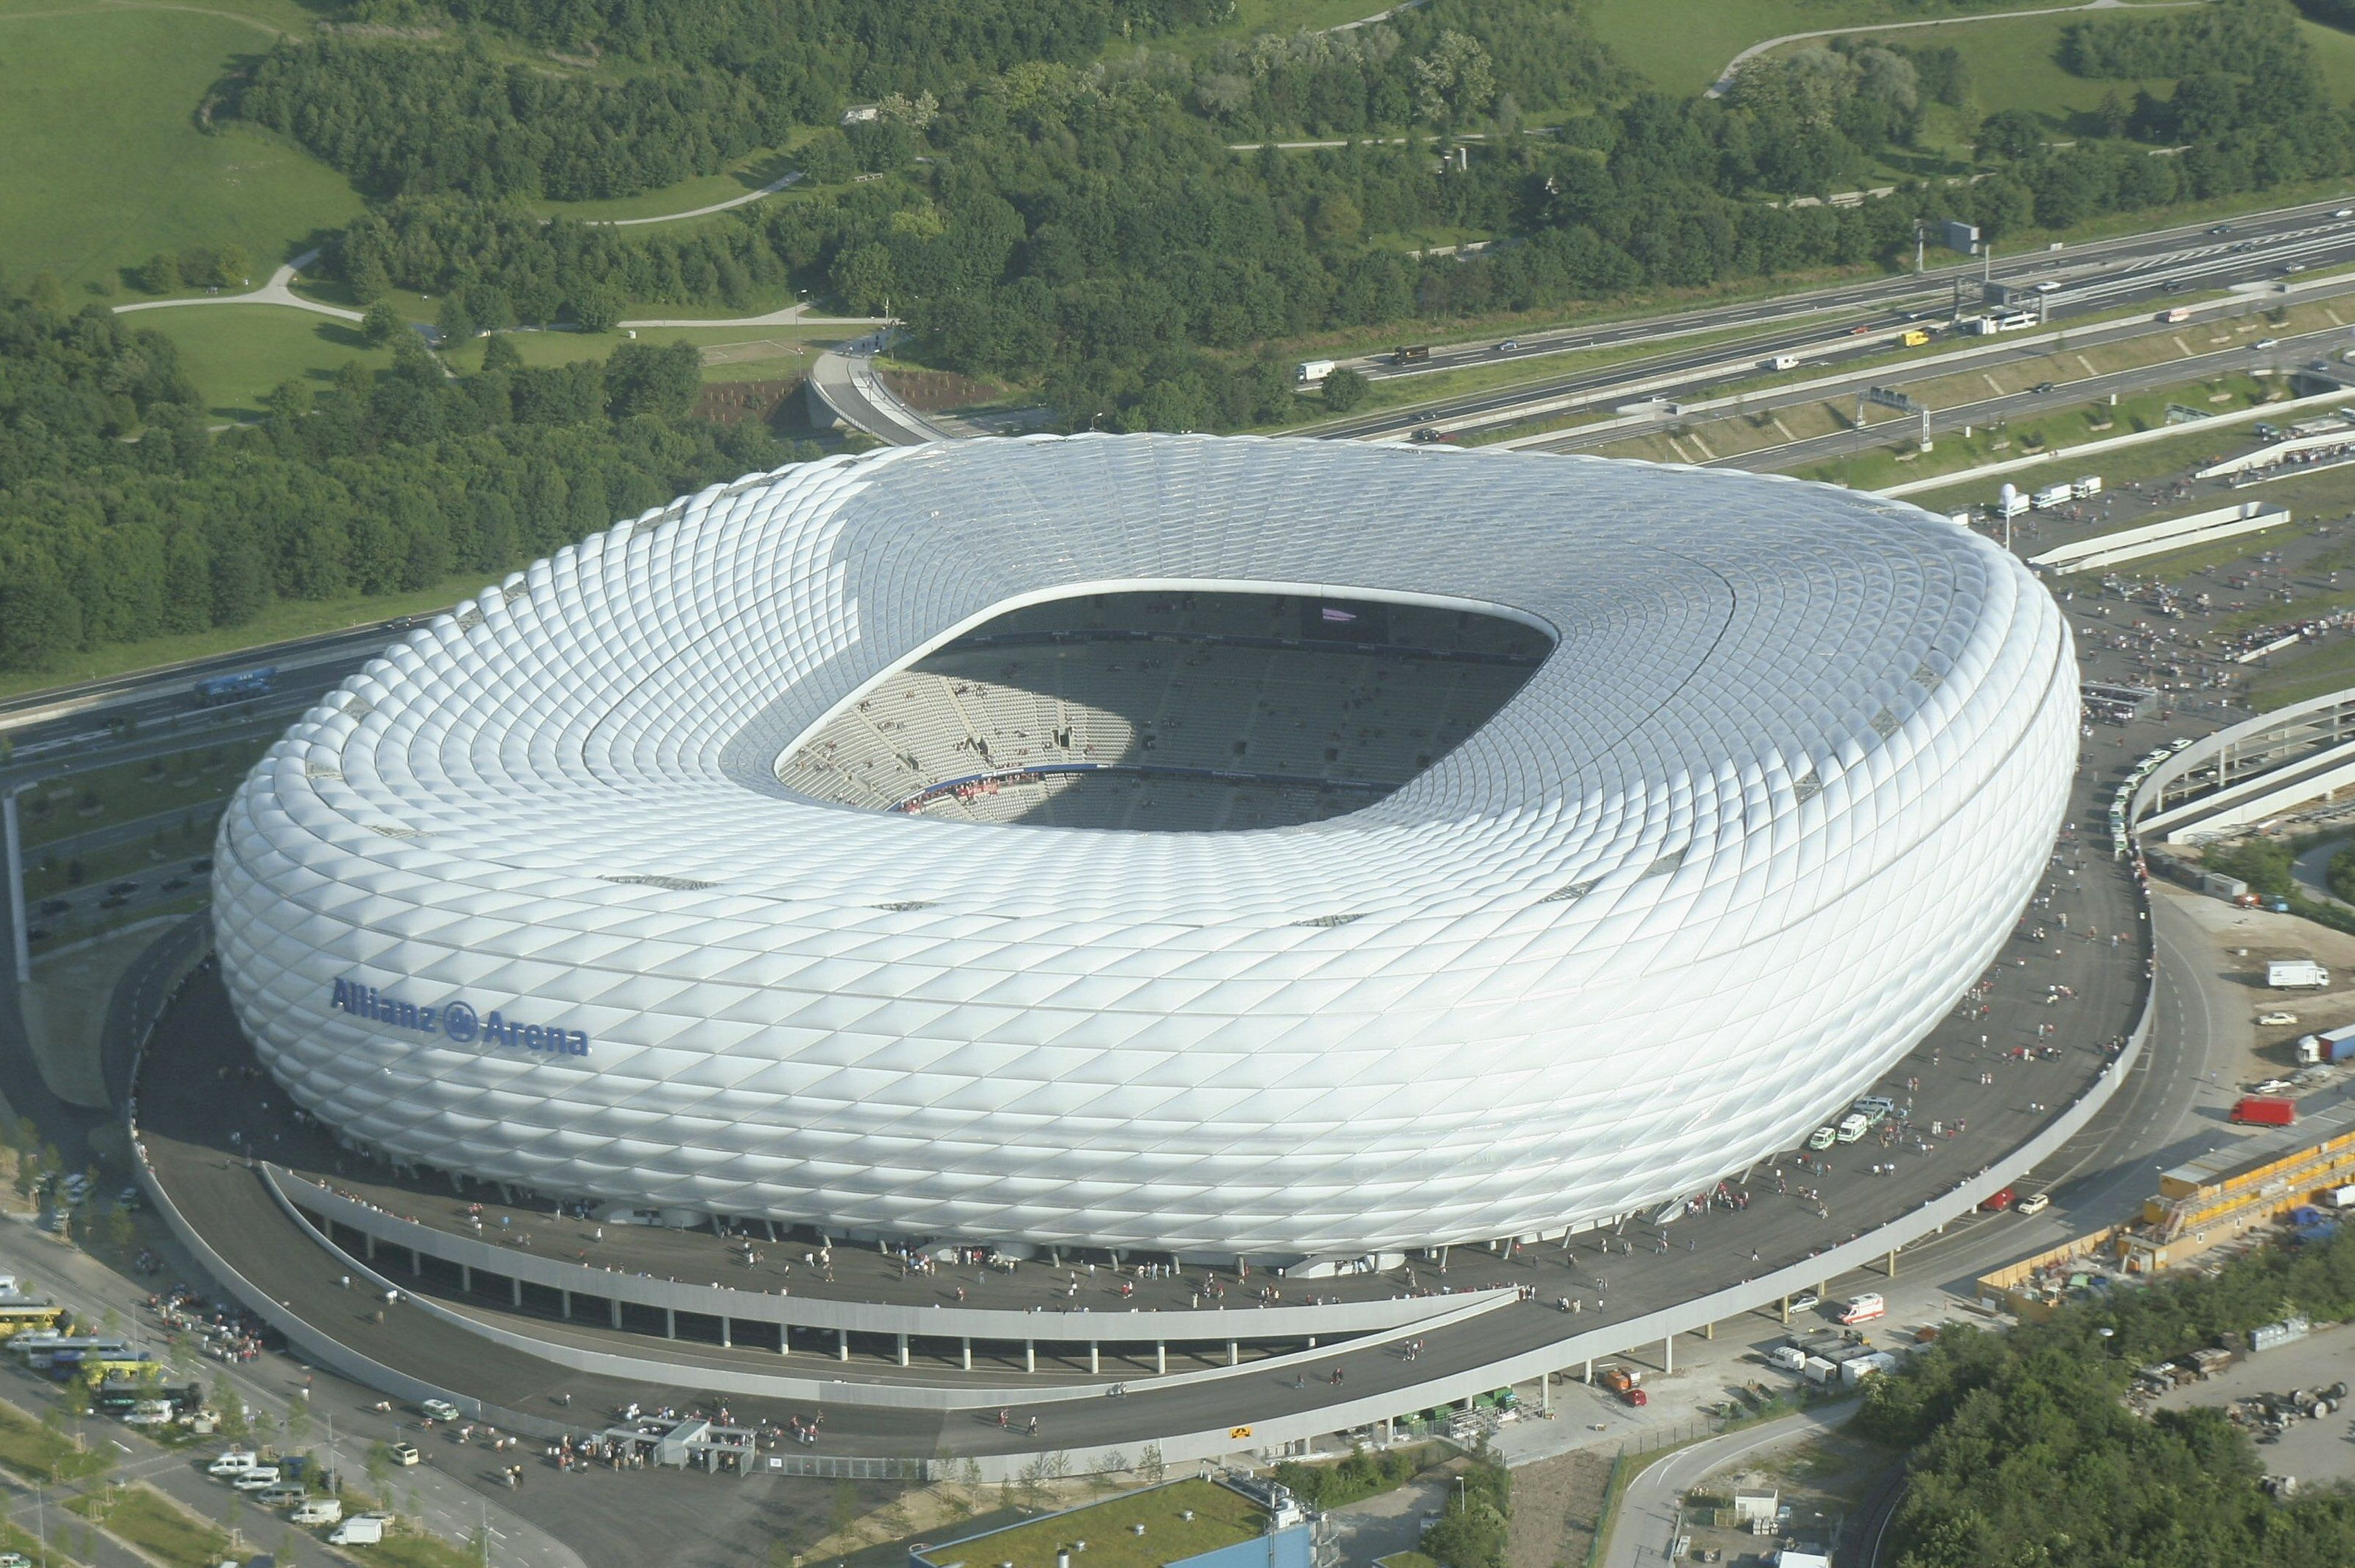 Aerial View of large, rounded square stadium, sculpted white, Allianz Arena signage, open air center